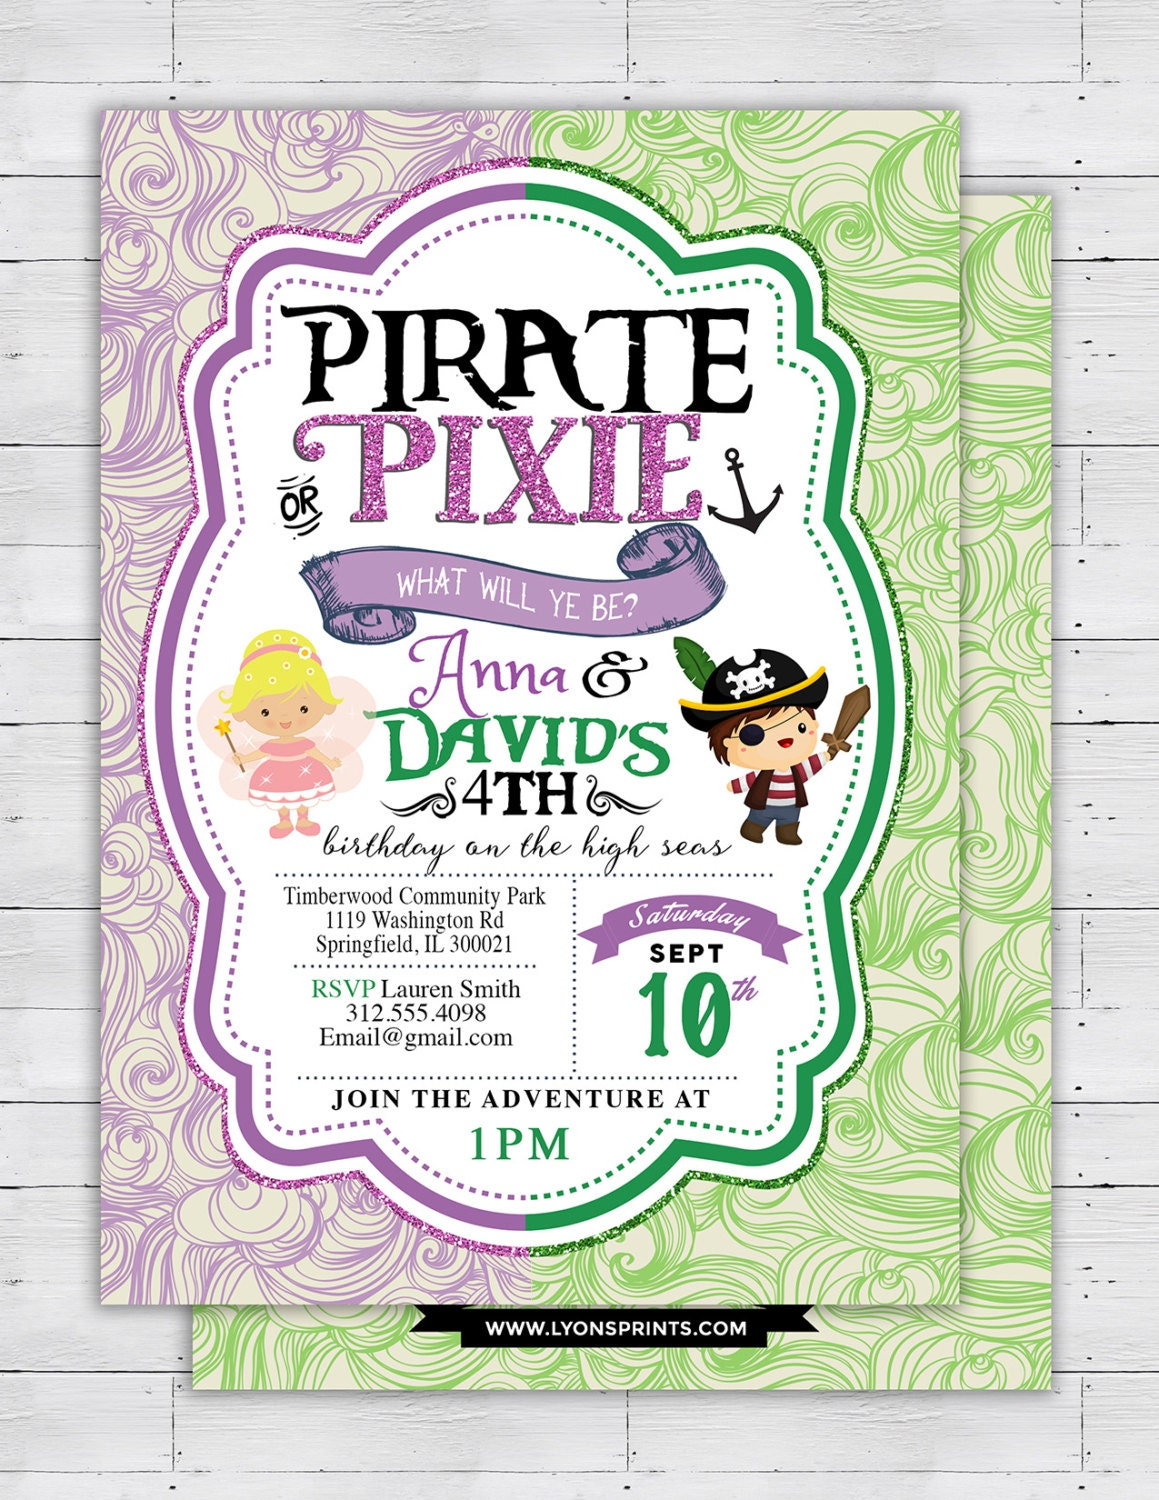 PiratesPrincess Pixie Party Invitations Pirate Princess Pixie – Princess and Pirates Party Invitations